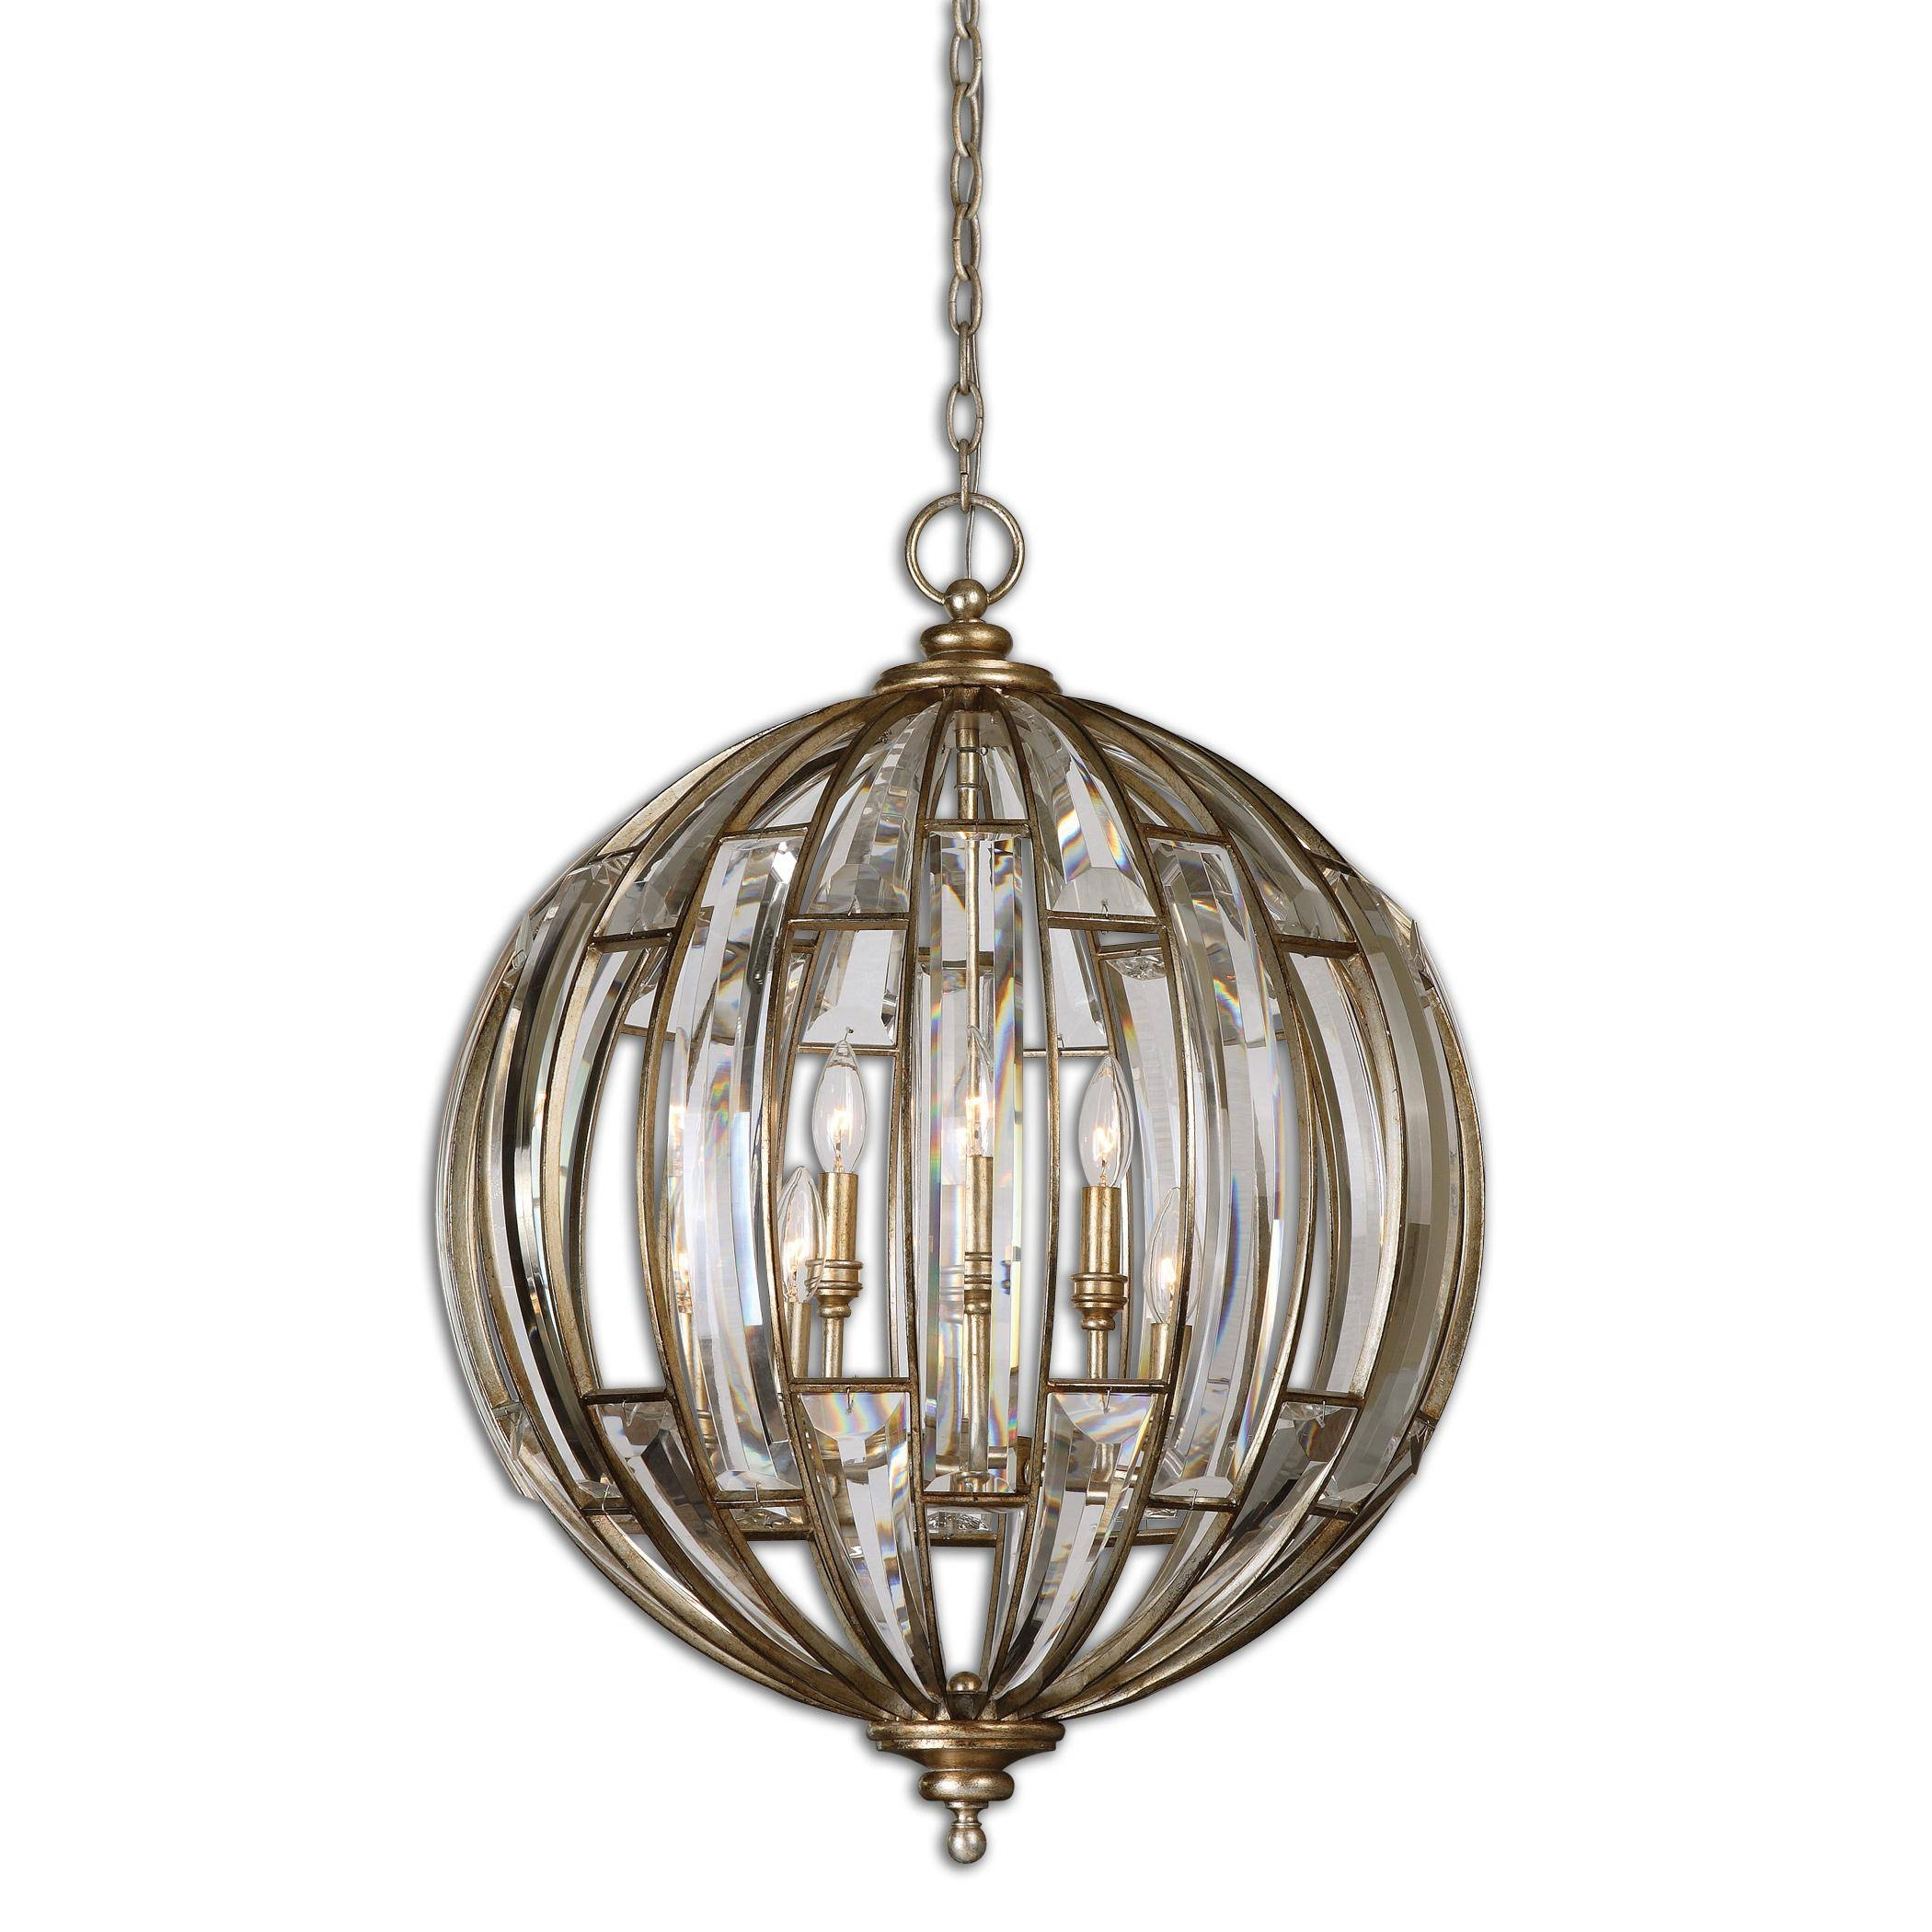 Uttermost Vicentina 6 Light Sphere Pendantuttermost | Wolf And in Uttermost Pendant Lights (Image 15 of 15)